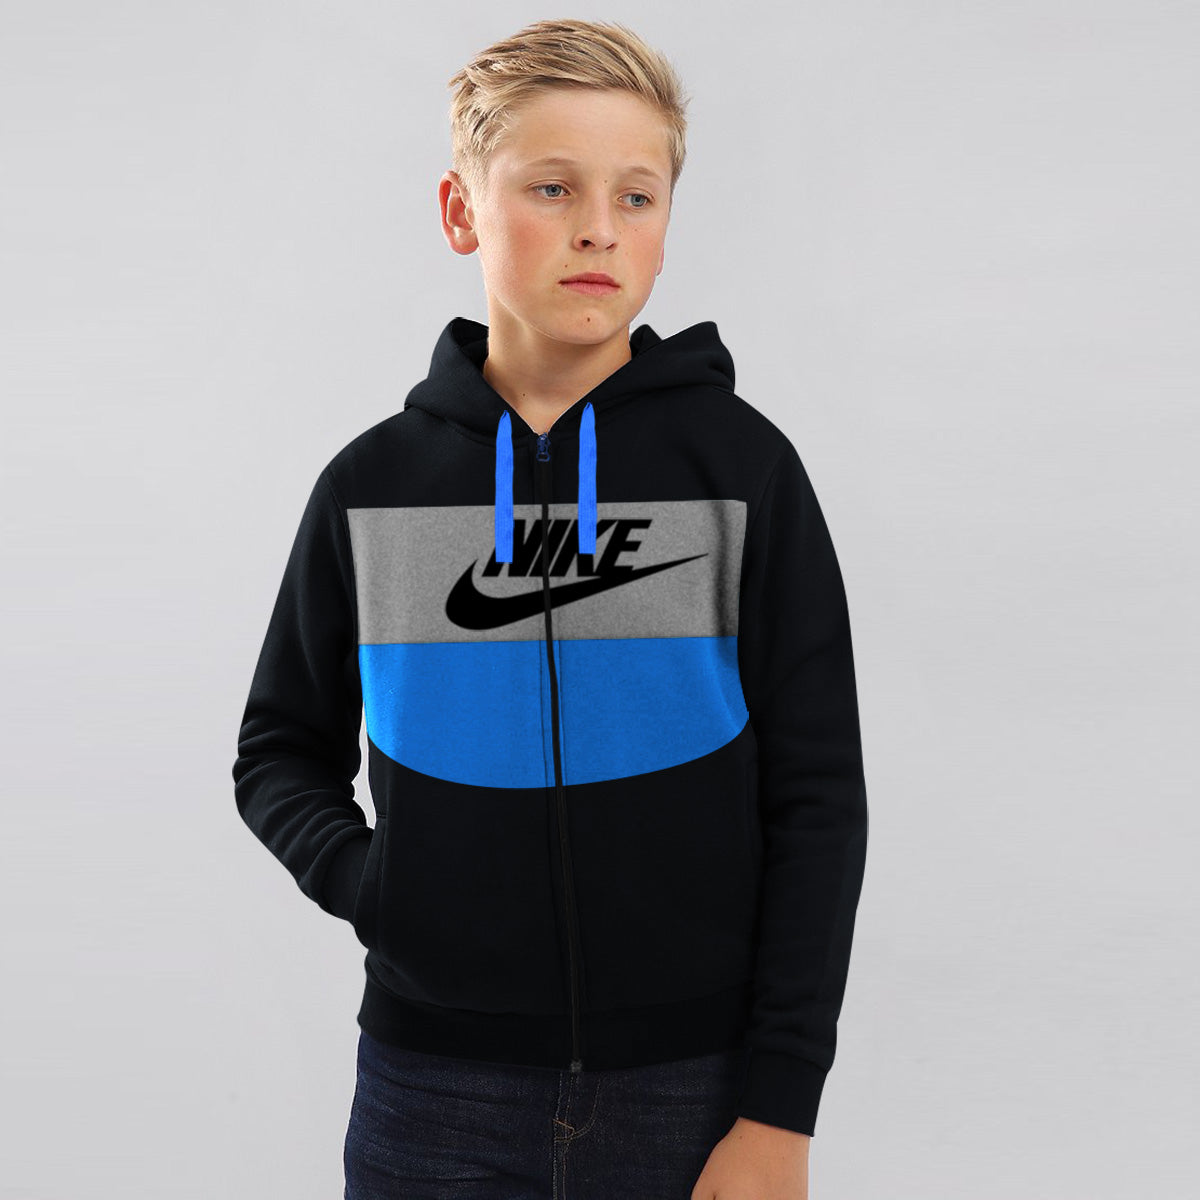 NK Slim Fit Stretchable Zipper Hoodie For Kids-Black with Cyan & Grey Panel-BE11020